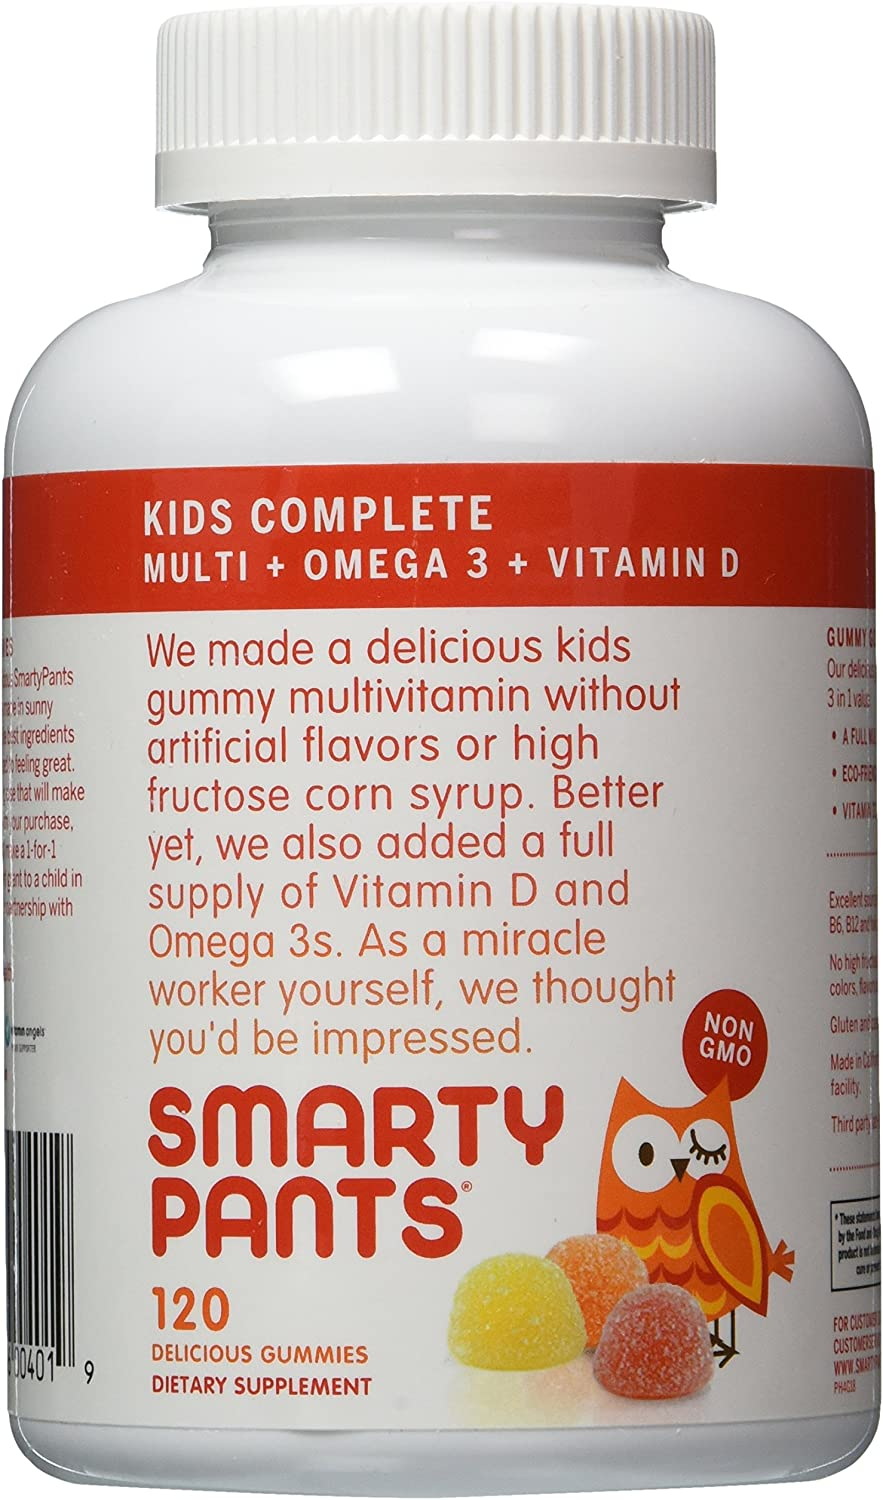 SmartyPants Children s All-in-One Multivitamin Plus Omega-3 Plus Vitamin D 120 Gummies Pack of 2